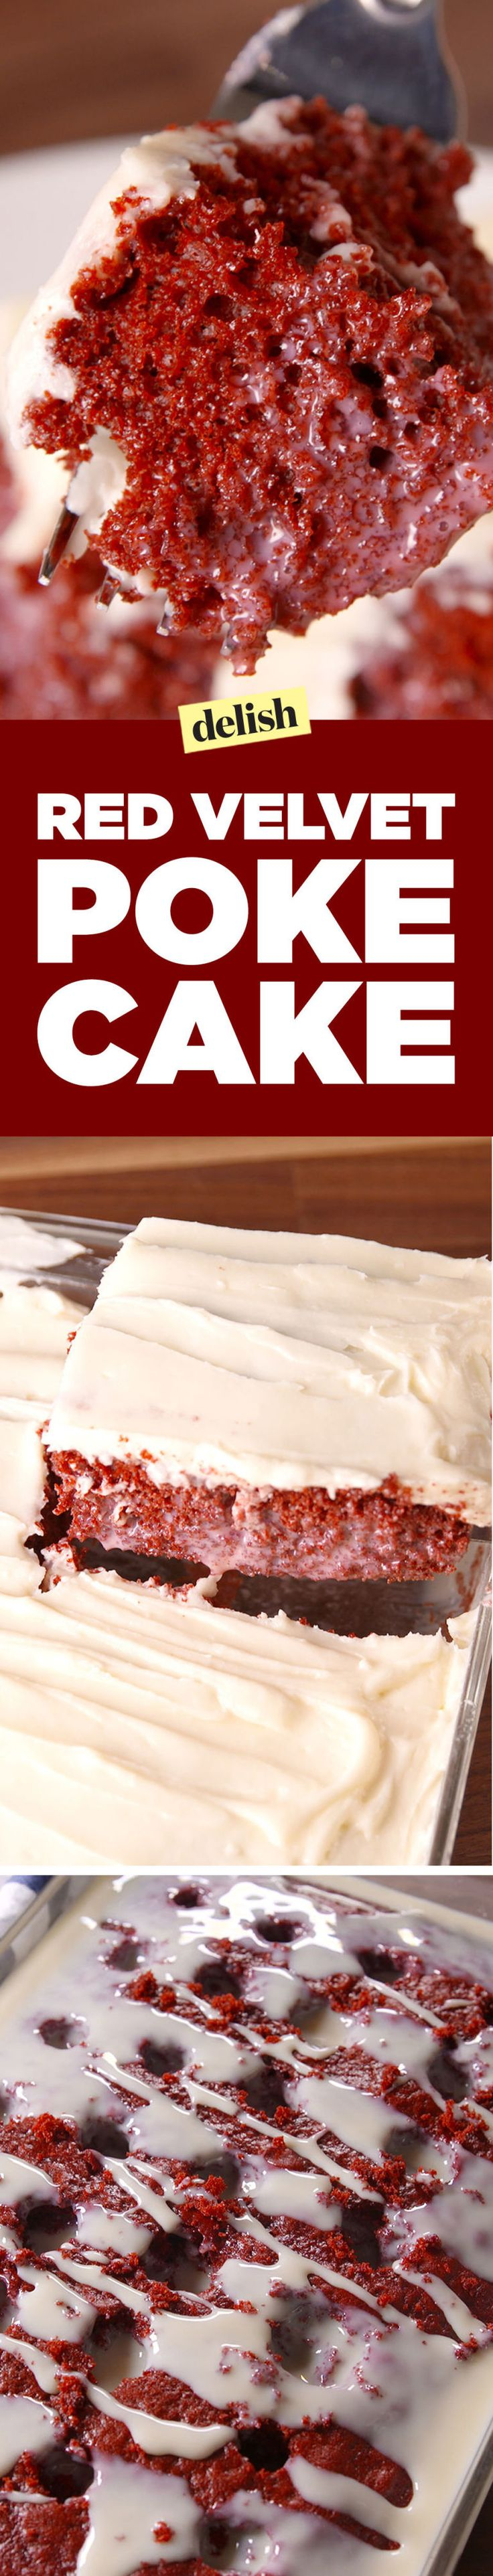 This Poke Cake Is The Ultimate In Red Velvet Desserts